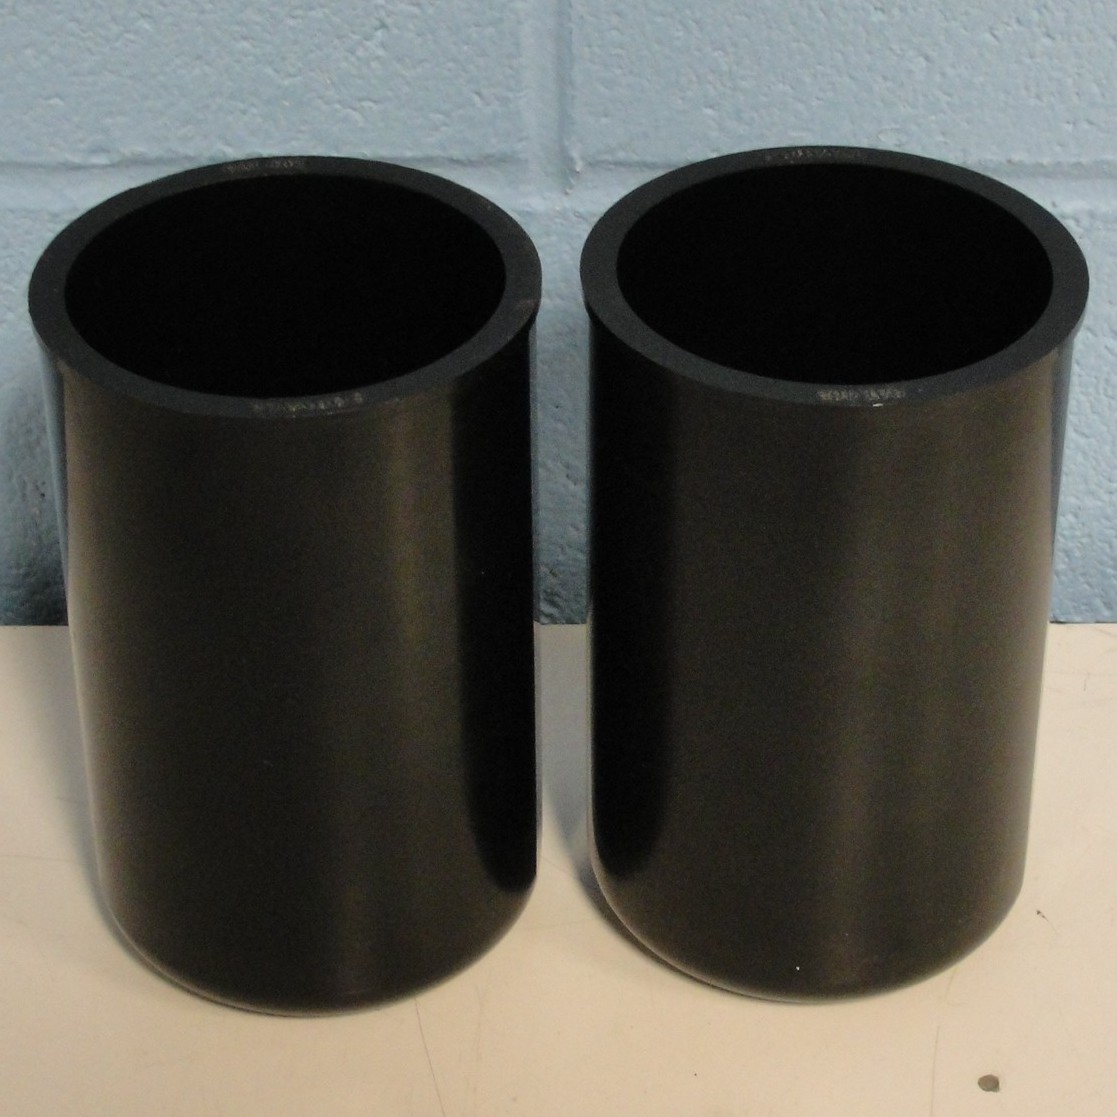 Sorvall Bucket Adapters 462 (Set of 2) Image